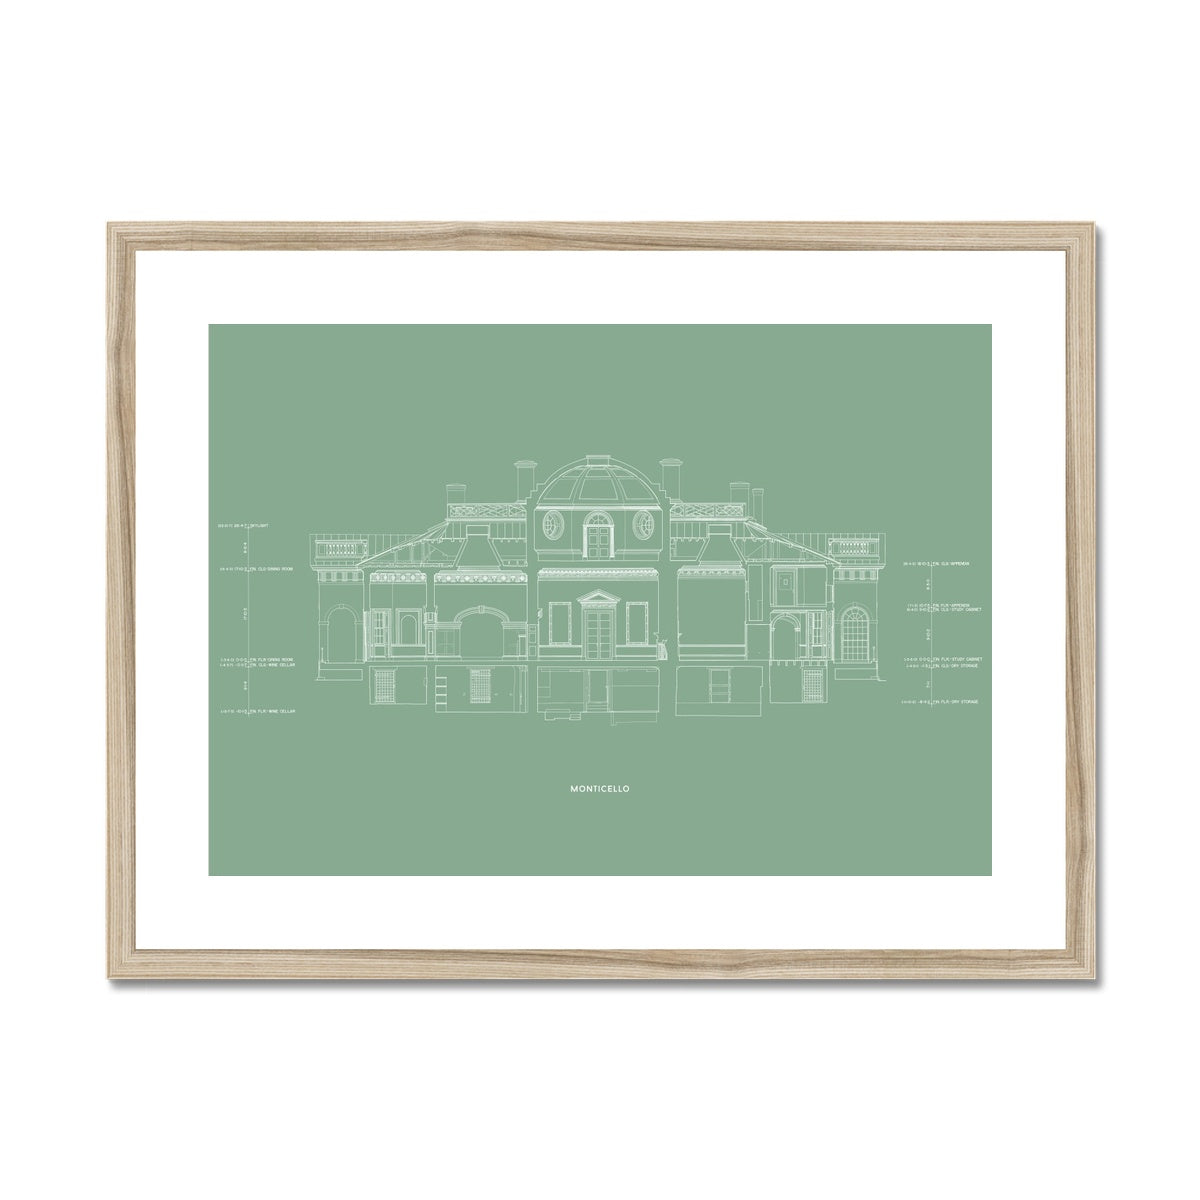 Monticello - West Elevation Cross Section - Green -  Framed & Mounted Print